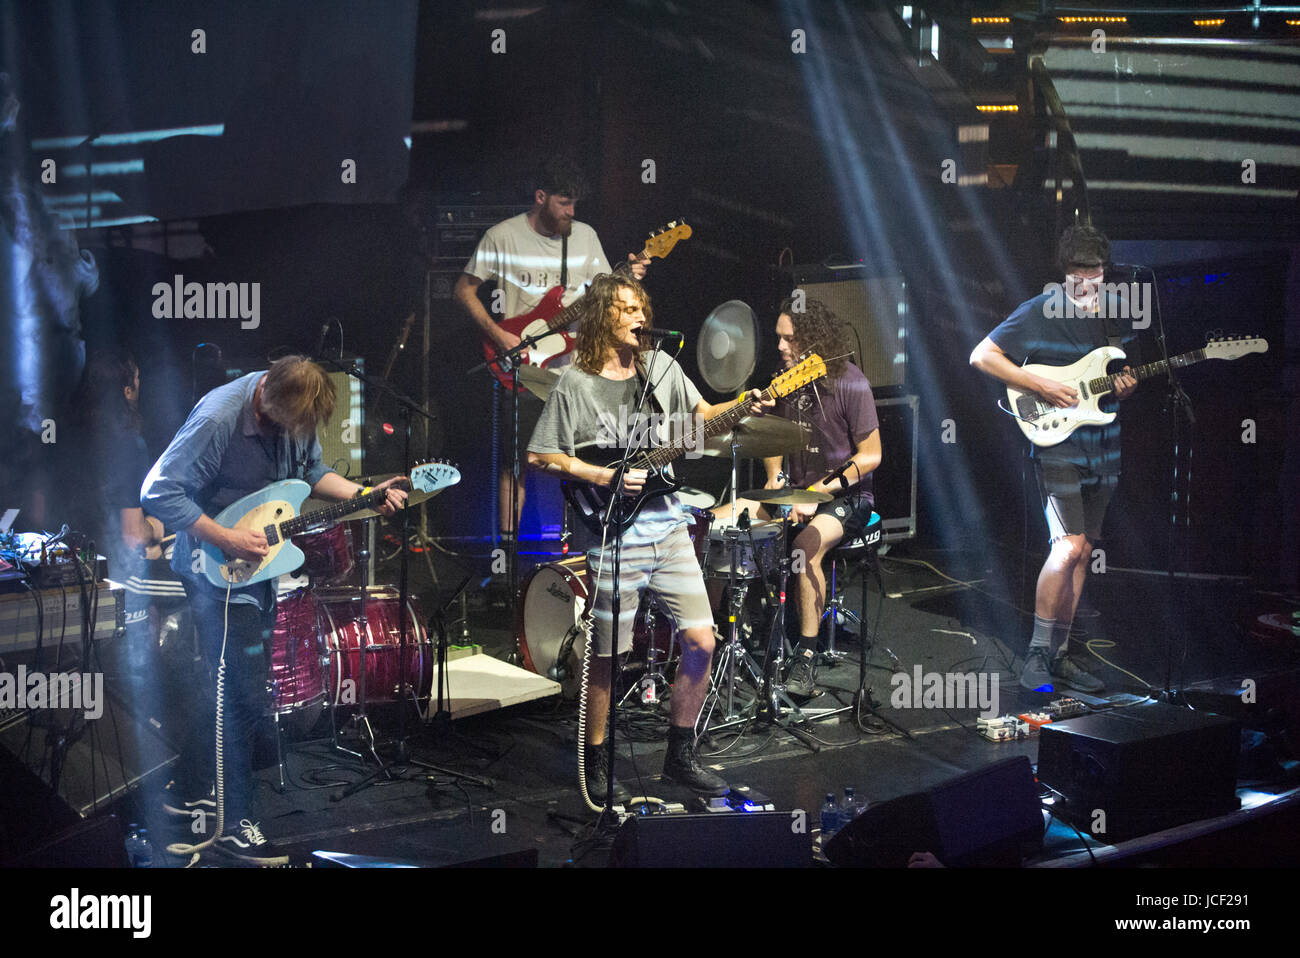 Manchester, UK. 14th Jun, 2017. Australian psychedelic rock band King Gizzard and the Lizard Wizard play the Albert - Stock Image